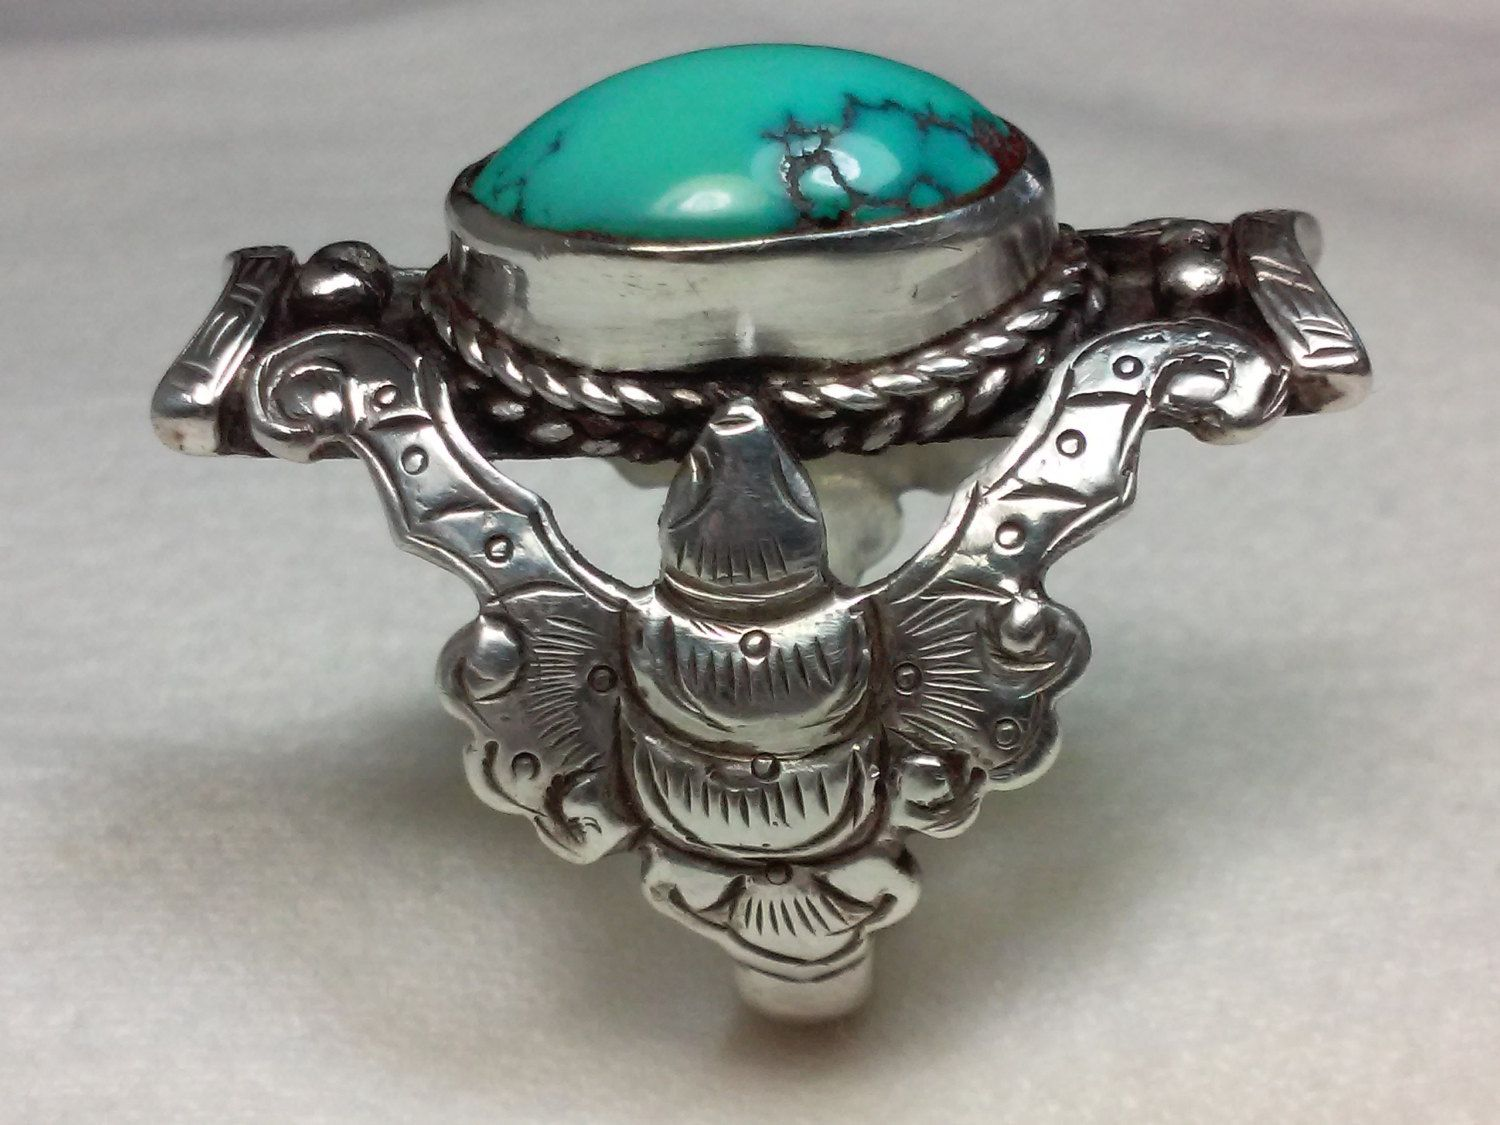 Eagle Turquoise Unisex Ring - Size 11.5 - 16x12mm Oval - Sterling Silver by MiketheRingman on Etsy